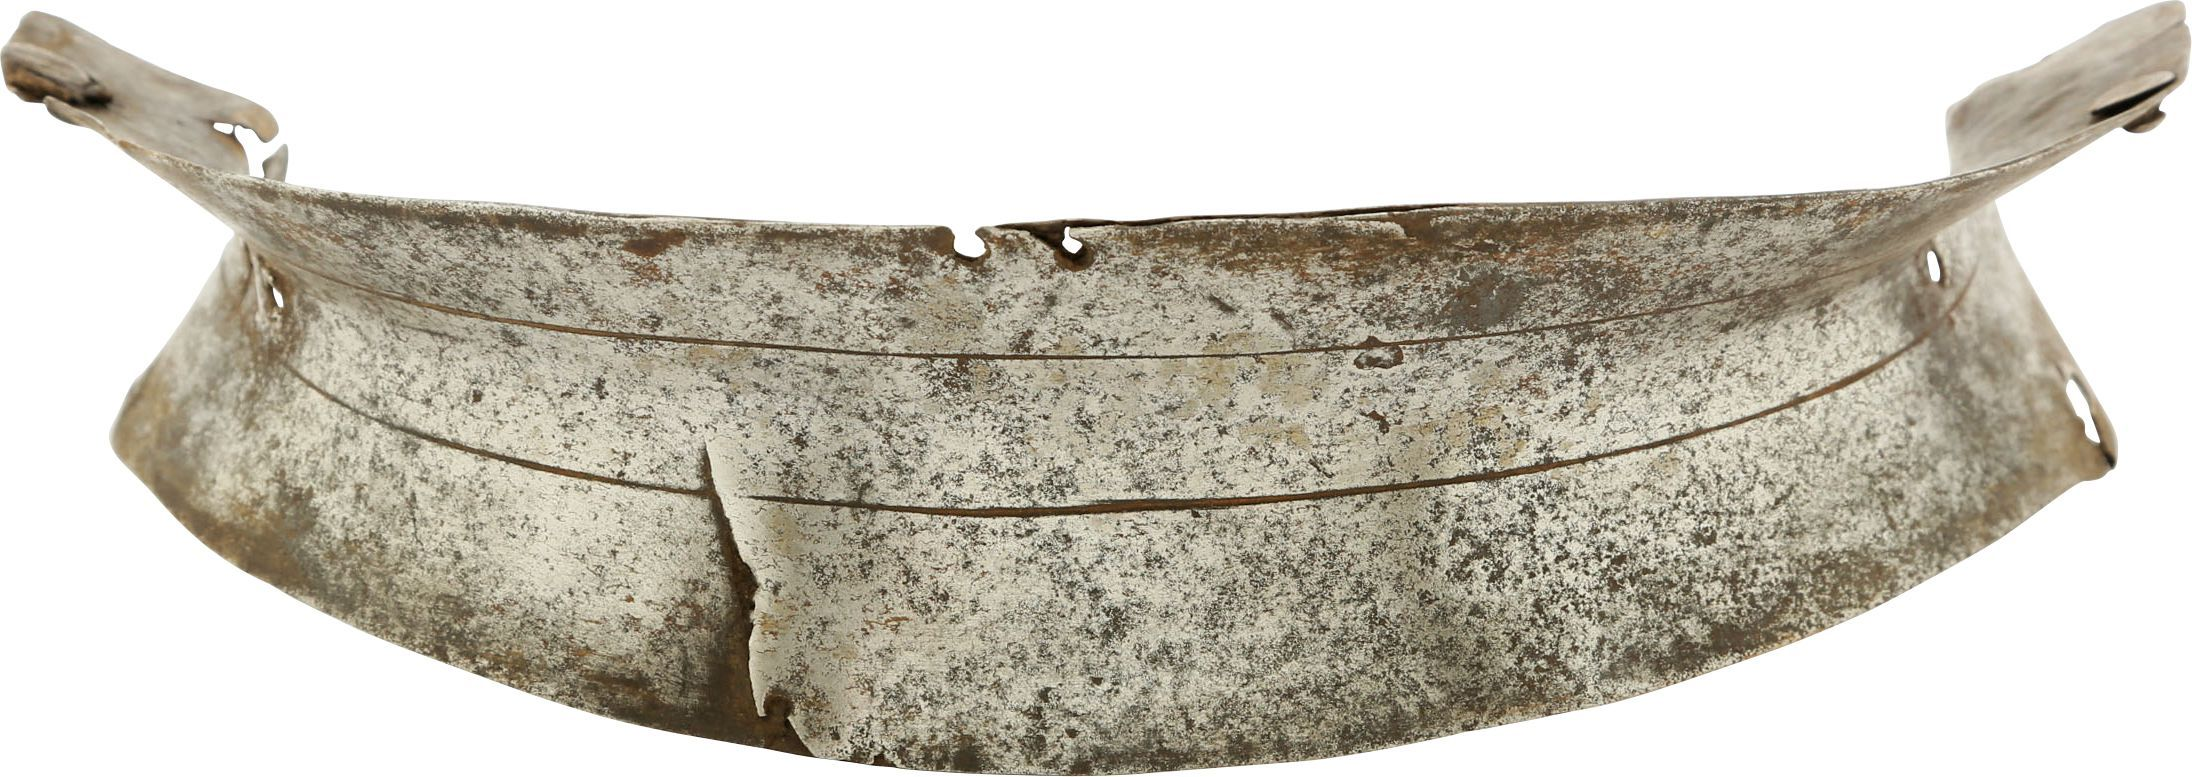 WAIST PLATE FROM A GERMAN ARMOR OF ABOUT 1520-30 - Fagan Arms